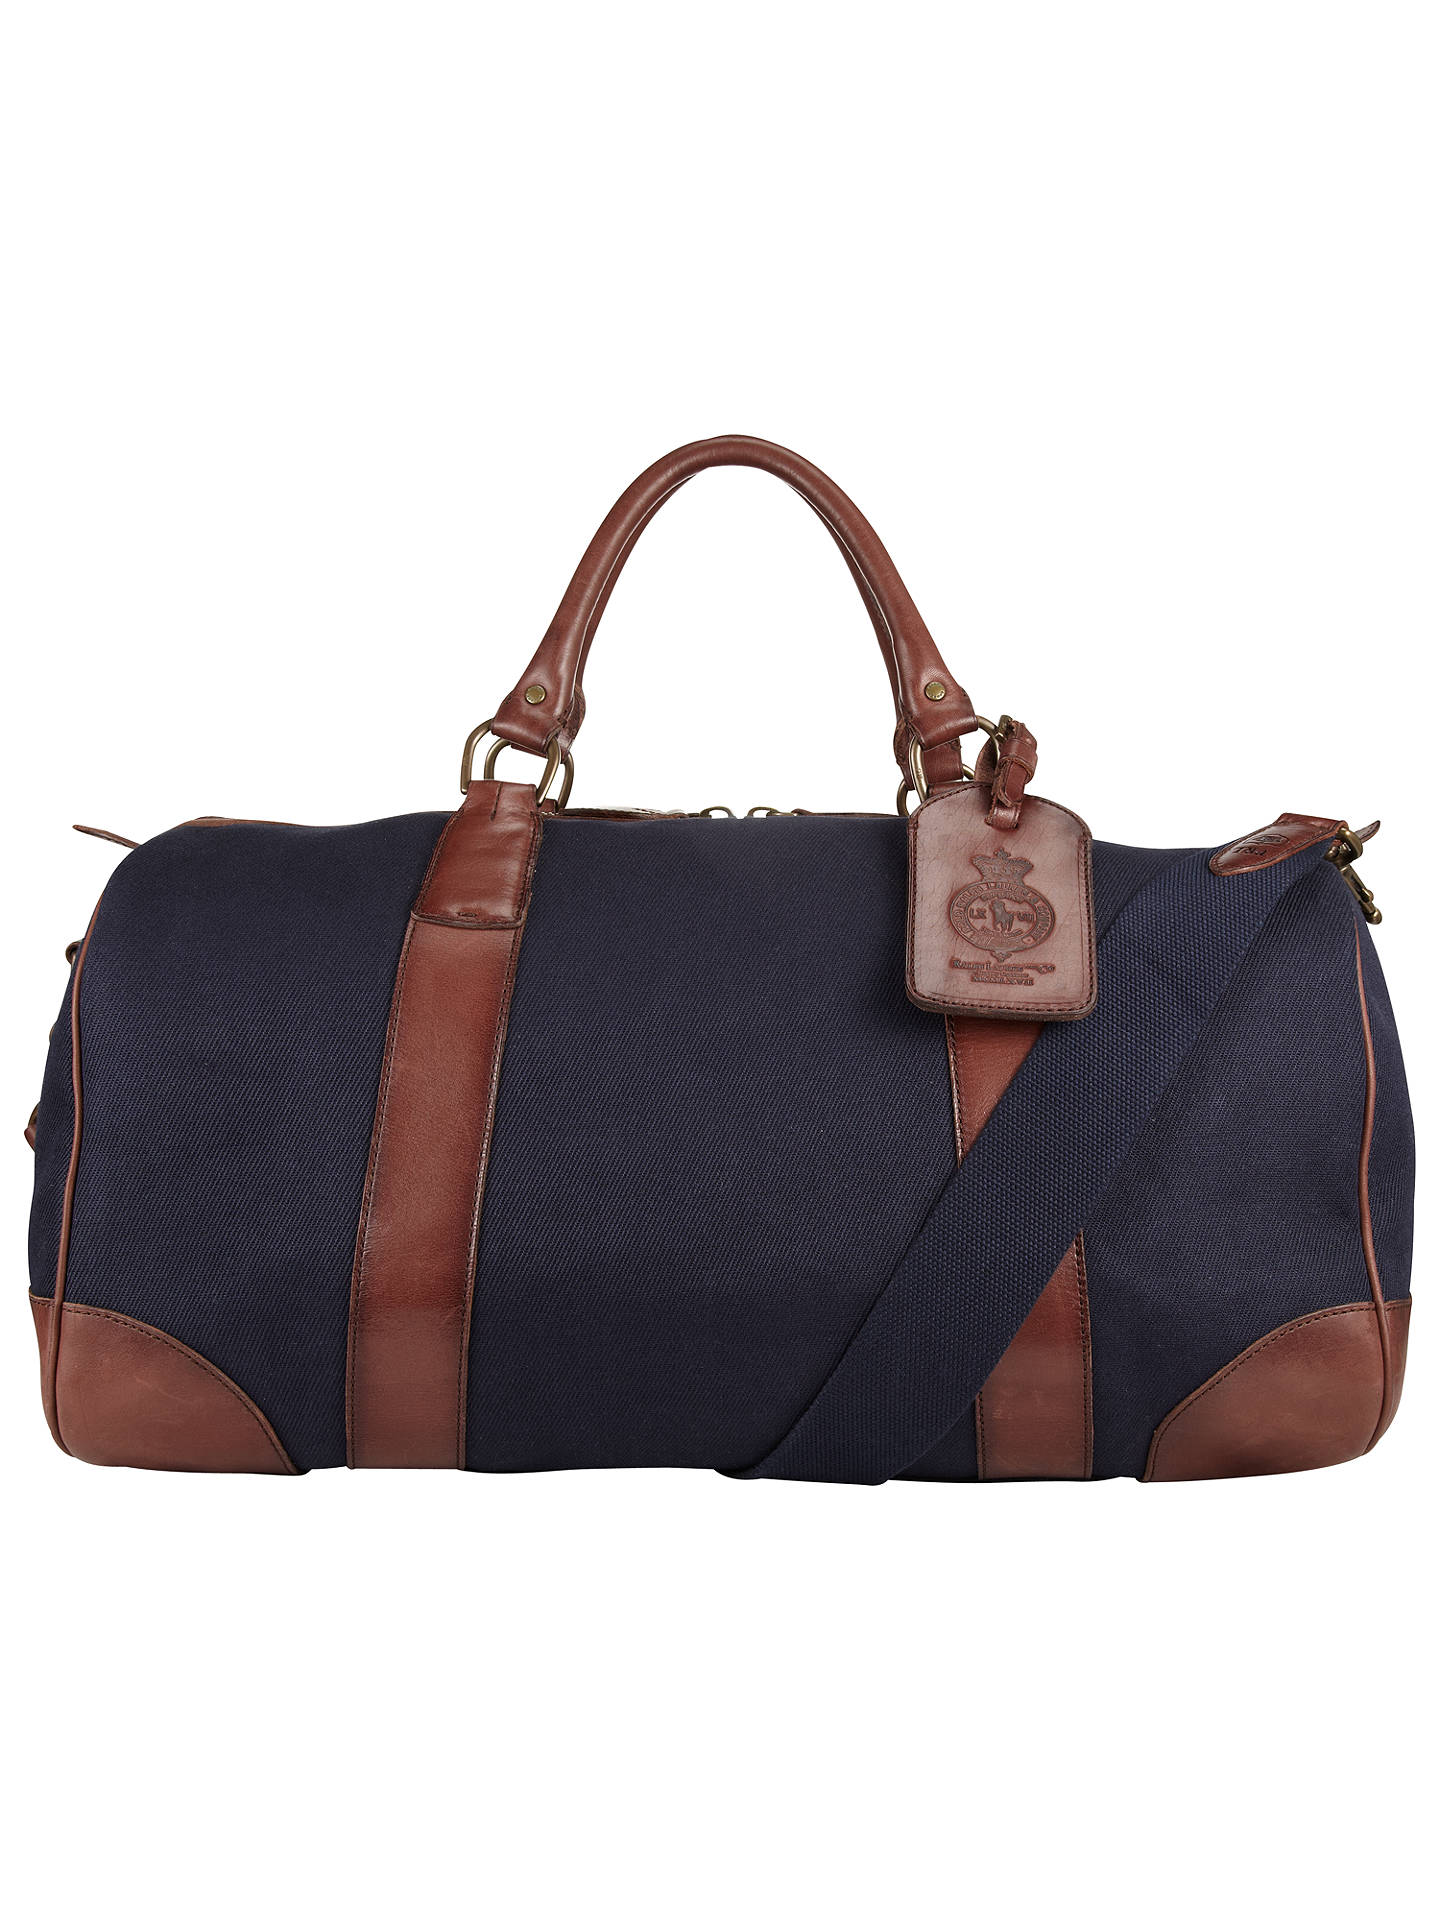 67aa0ec59b1 Buy Polo Ralph Lauren Canvas and Leather Gym Bag, Navy Online at  johnlewis.com ...